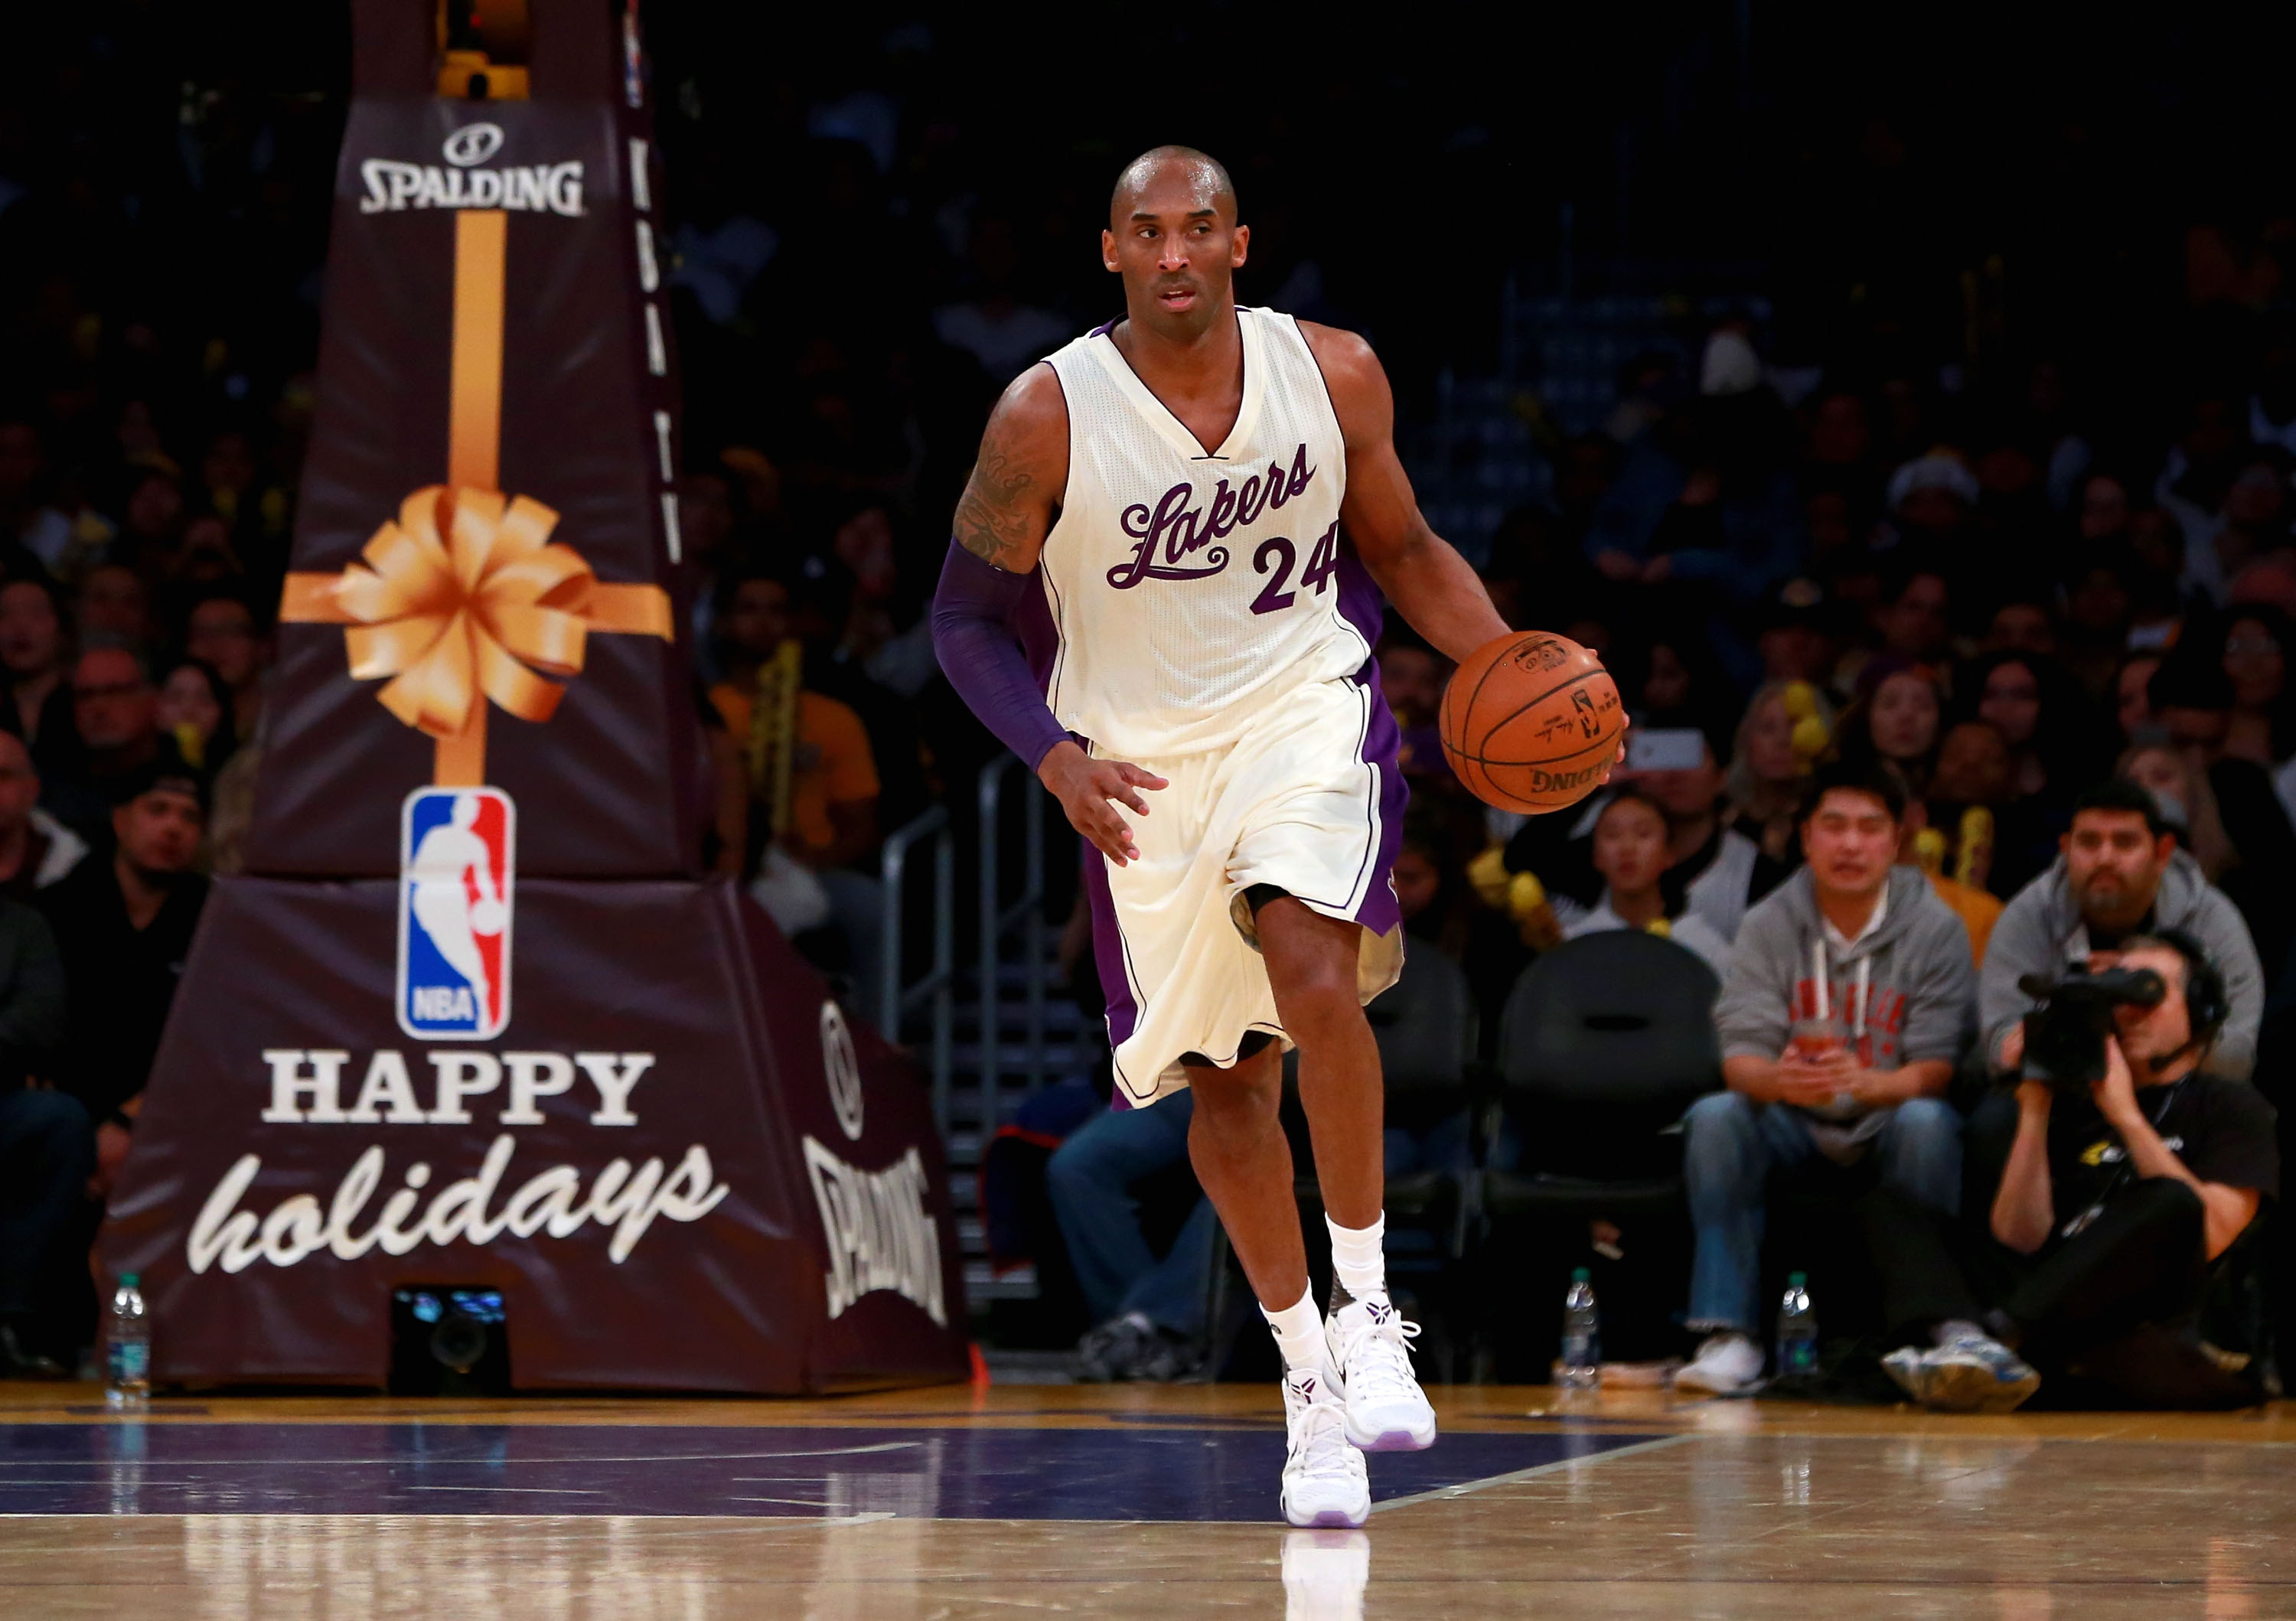 hot sale online 1bca9 31f49 NBA Christmas uniforms: The best and worst jerseys of all time ...